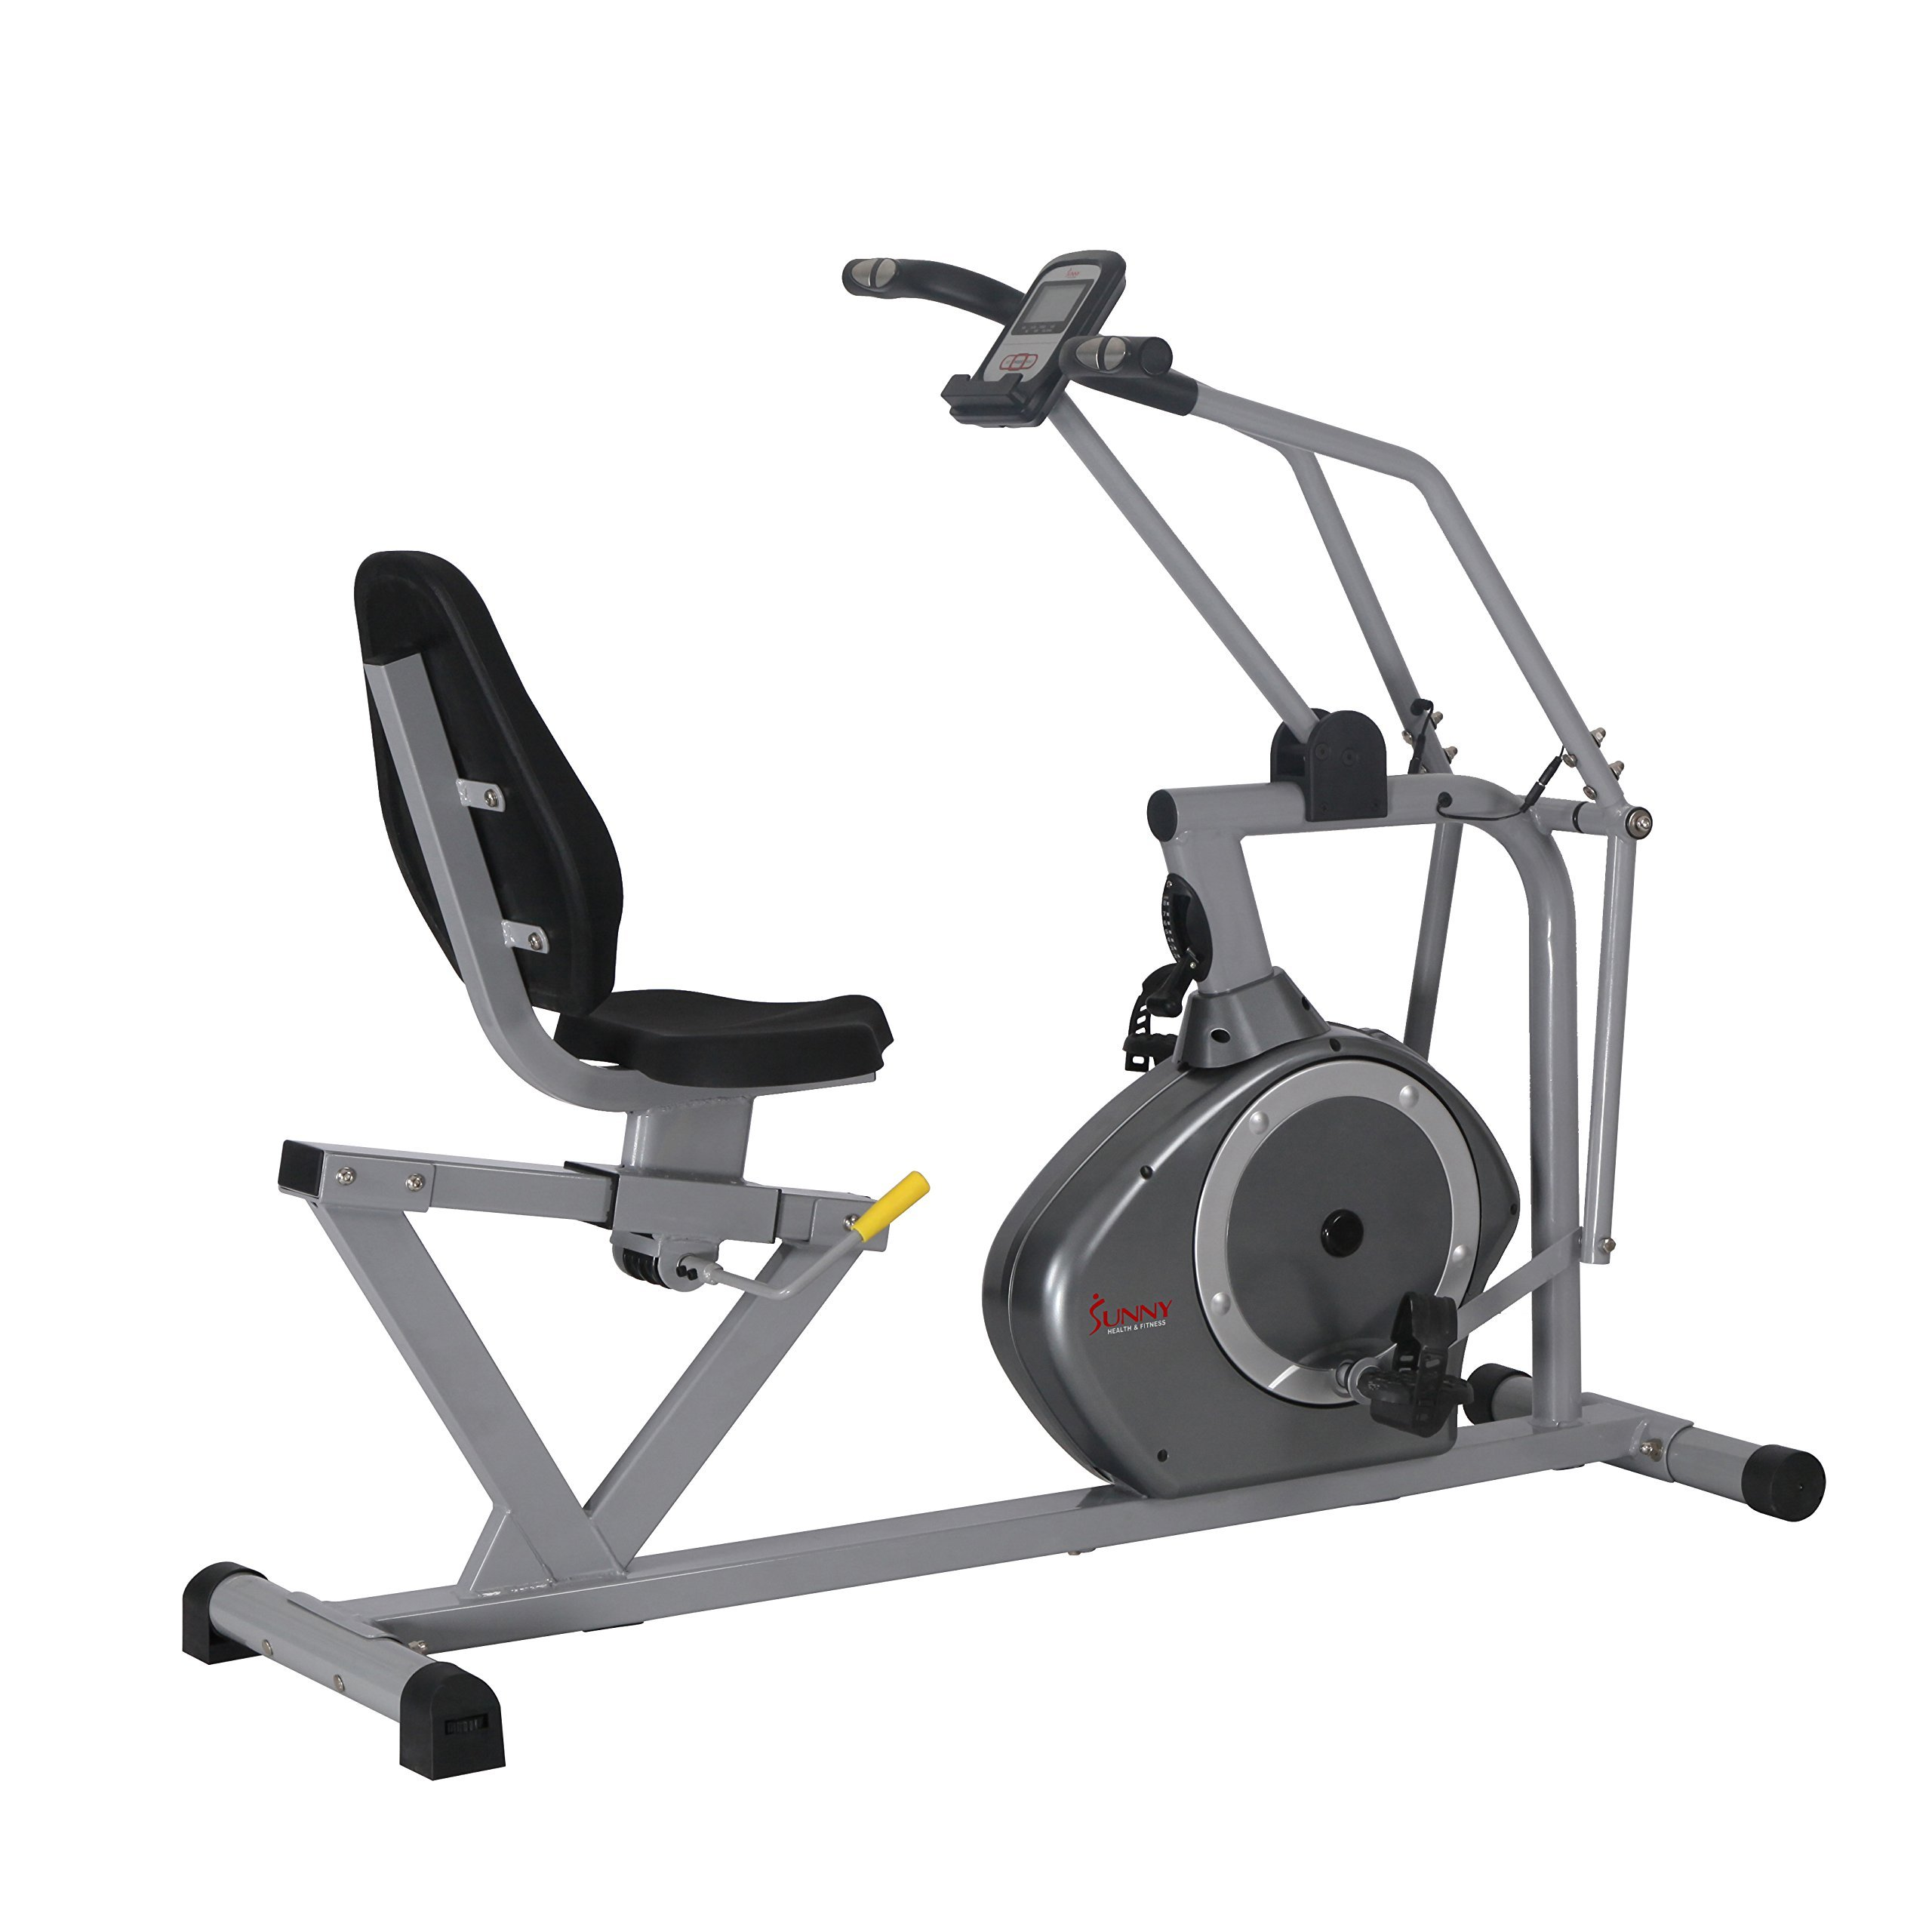 Sunny Health & Fitness Magnetic Recumbent Bike Exercise Bike, 350lb High Weight Capacity, Cross Training, Arm Exercisers, Monitor, Pulse Rate Monitoring - SF-RB4708 by Sunny Health & Fitness (Image #1)